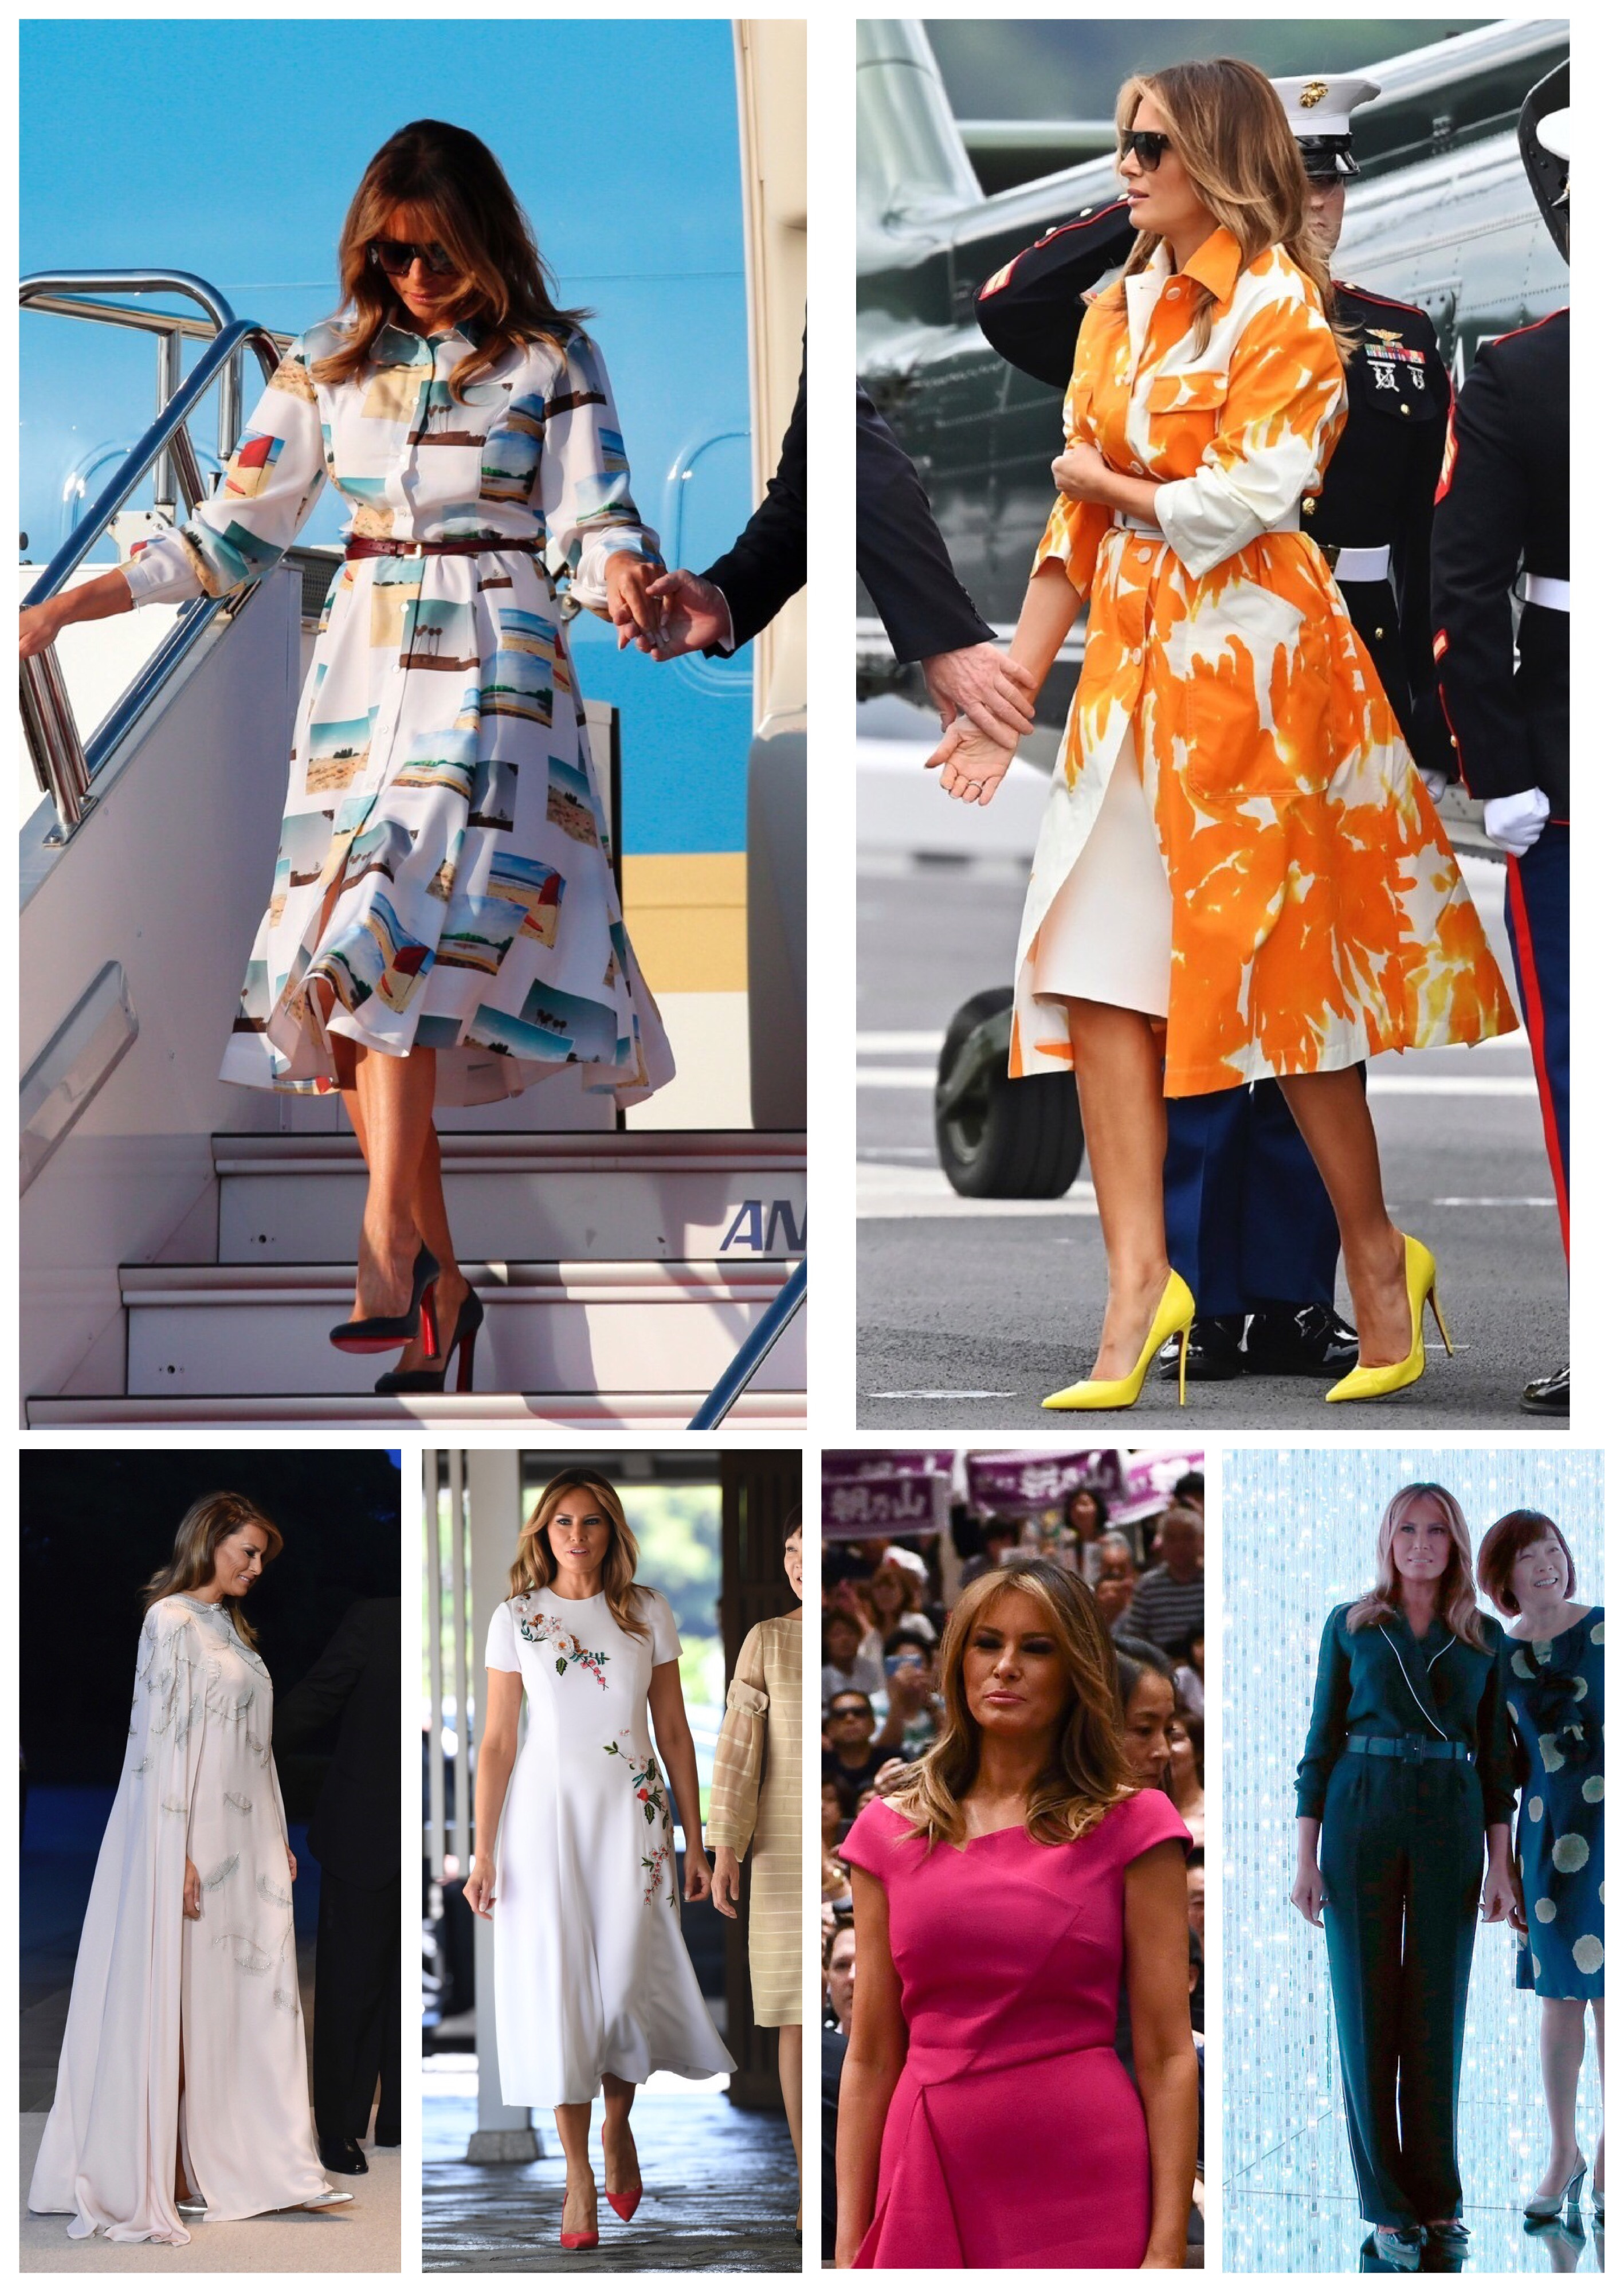 Melania Trump's Fashionable Outfits in Japan